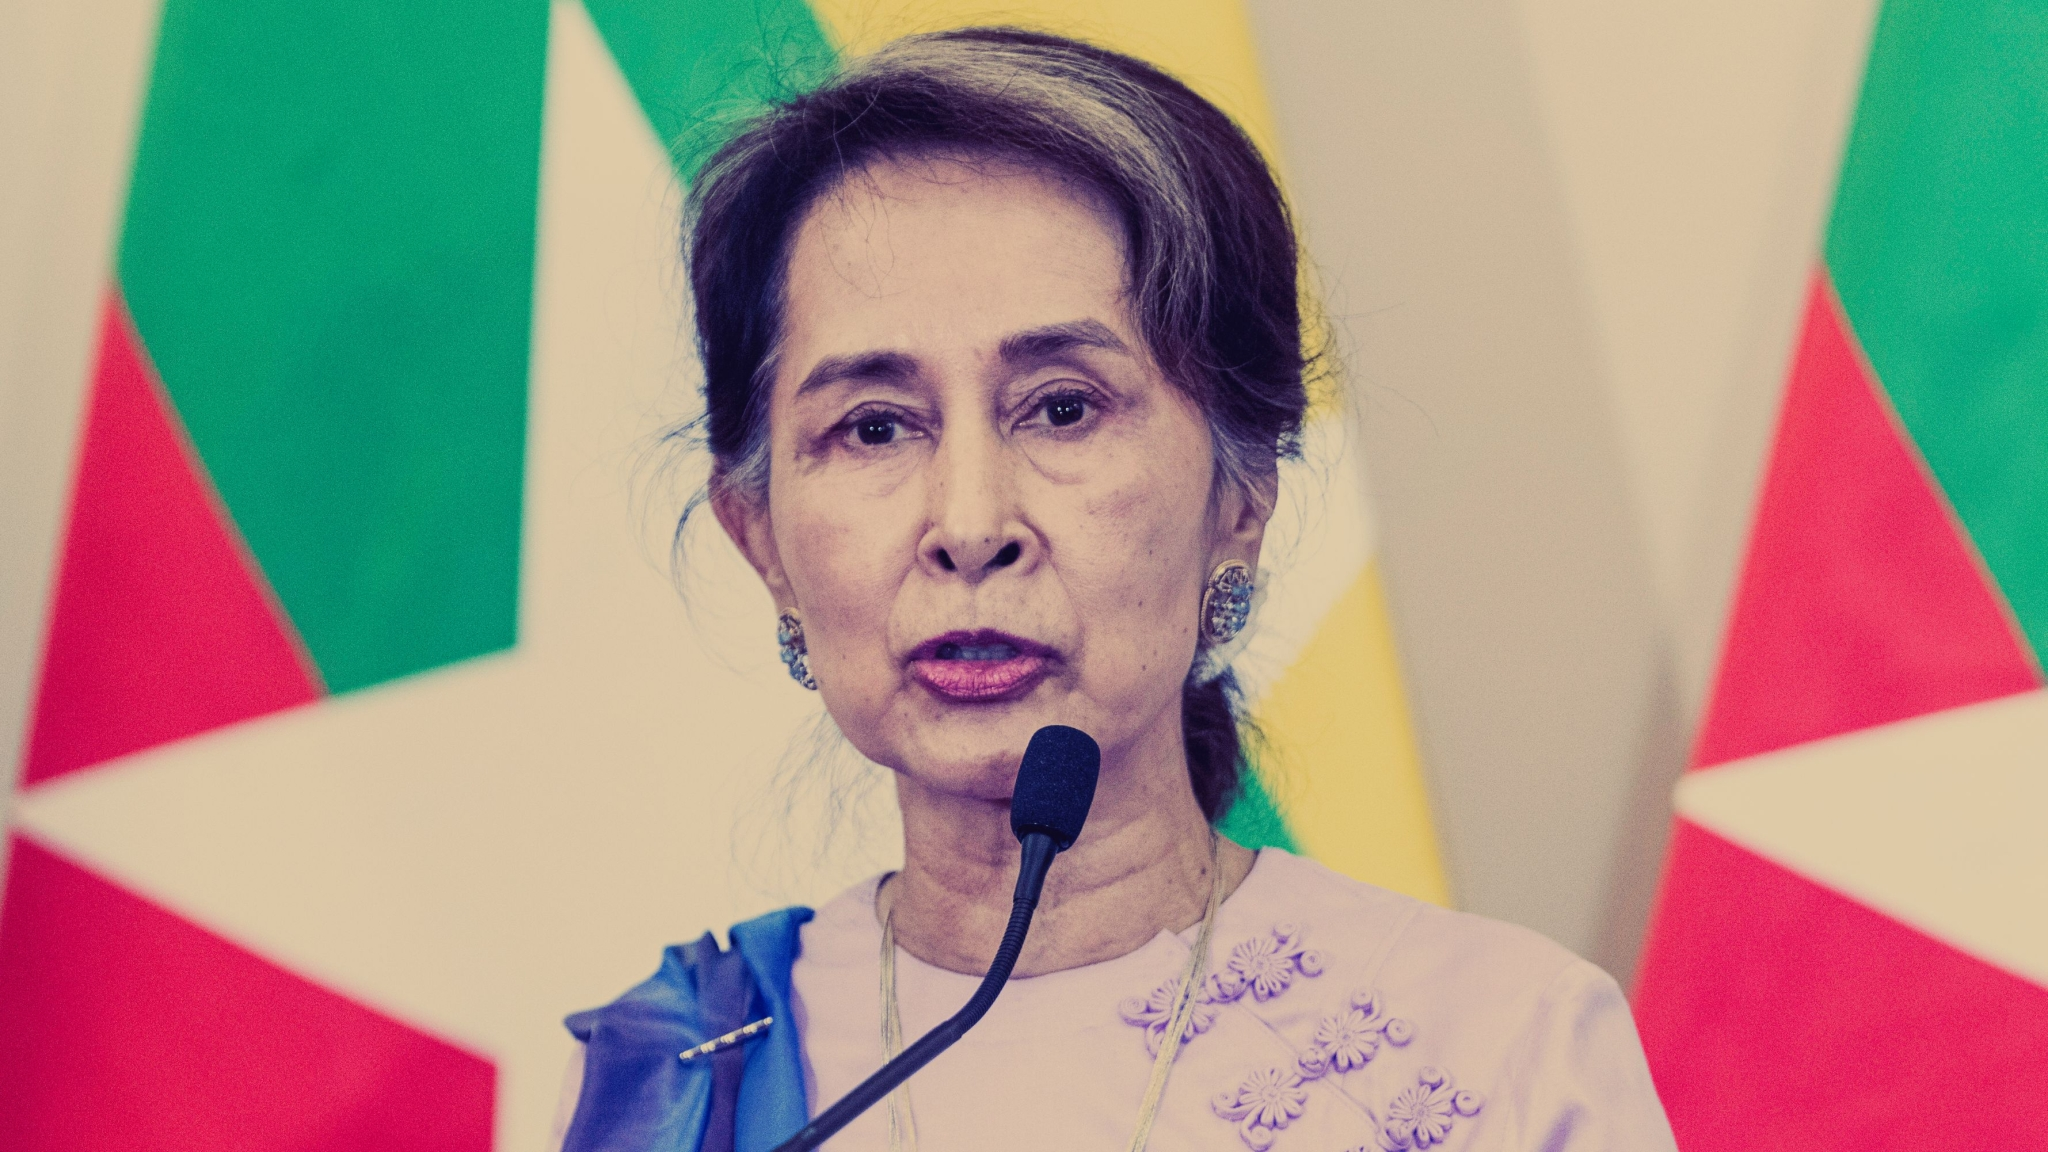 Aung Suu Kyi Might Be Prosecuted in Rohingya Violations: UN Expert